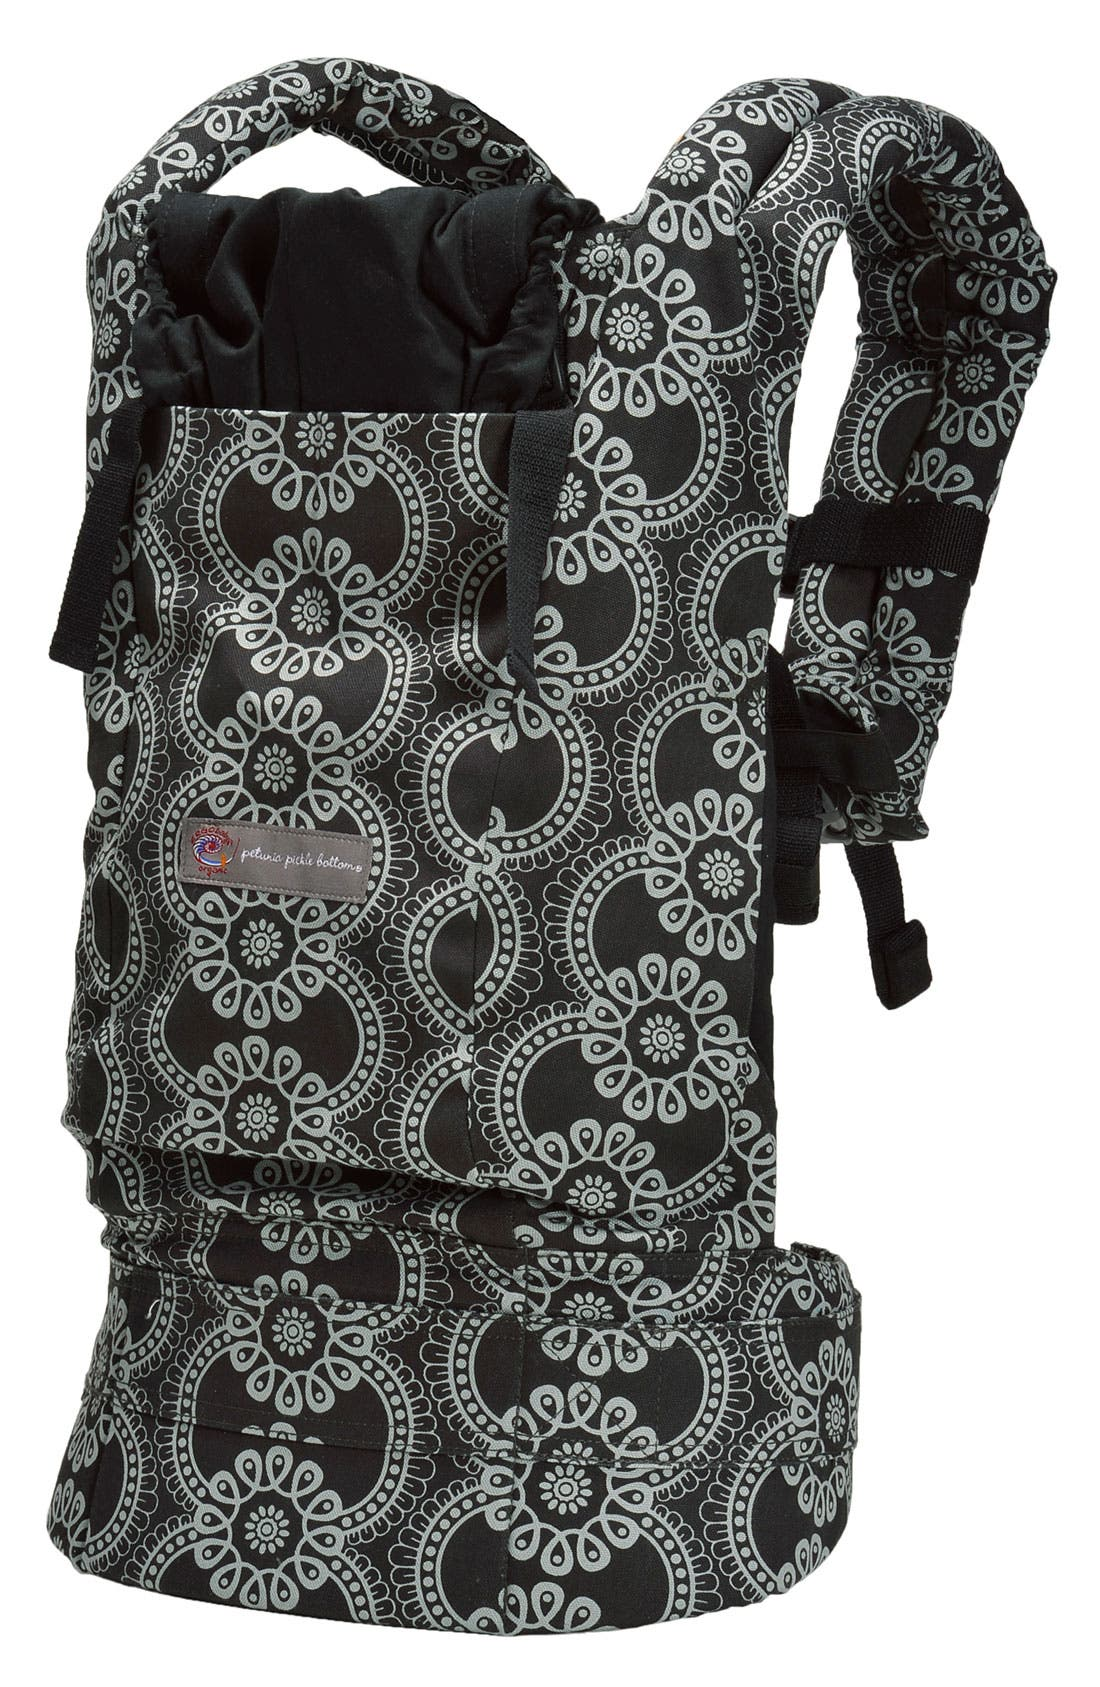 Baby Carrier with Petunia Pickle Bottom Print,                         Main,                         color, 001